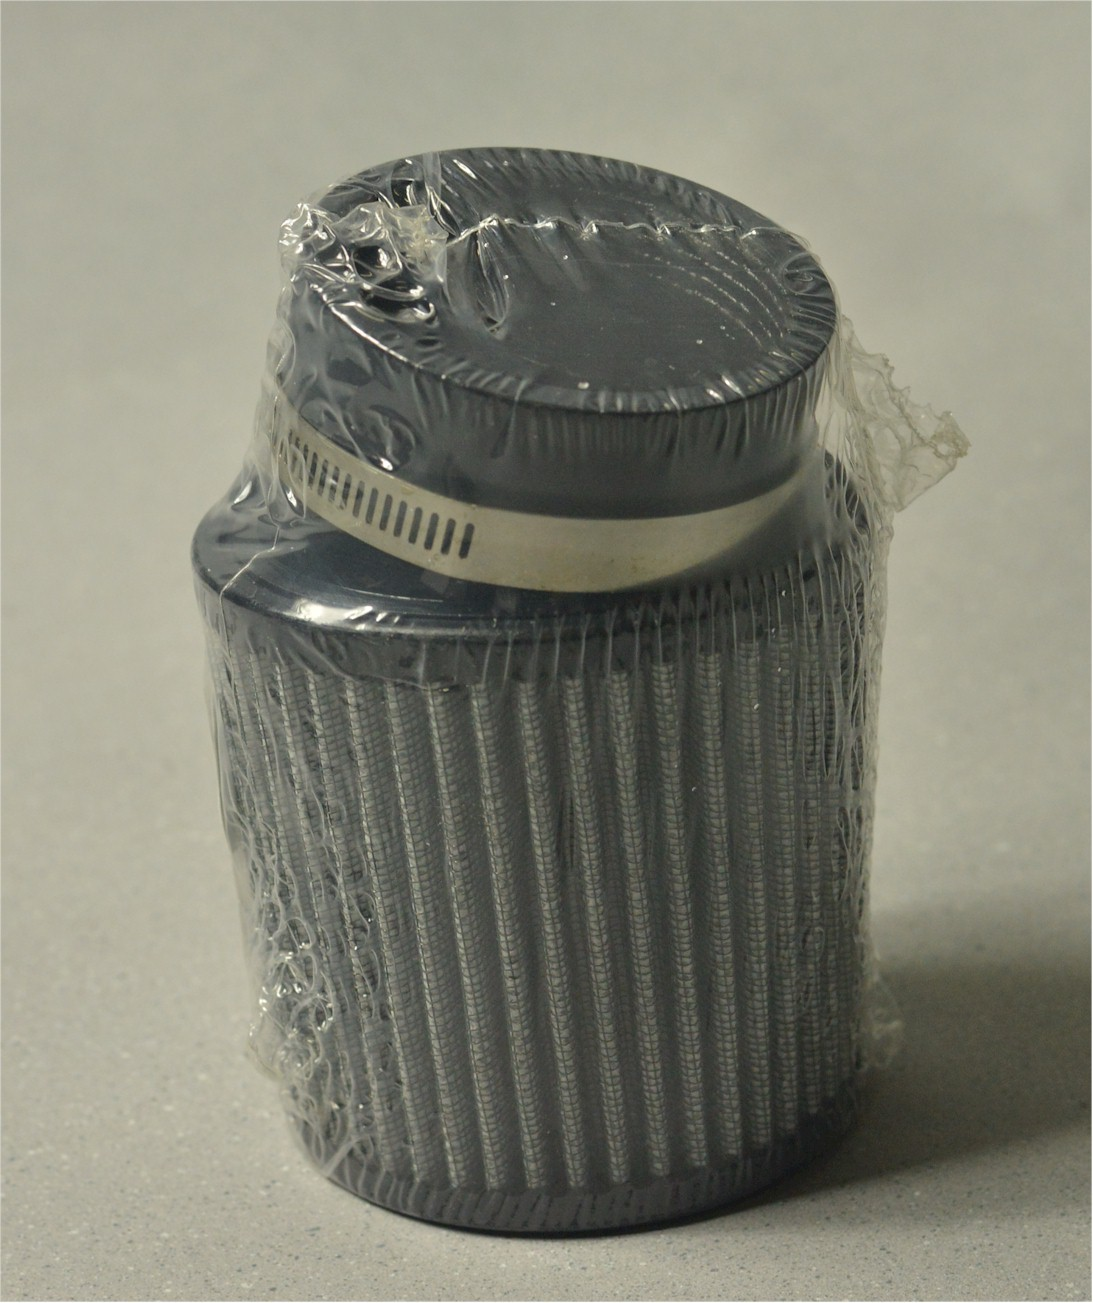 air filter - Product Image